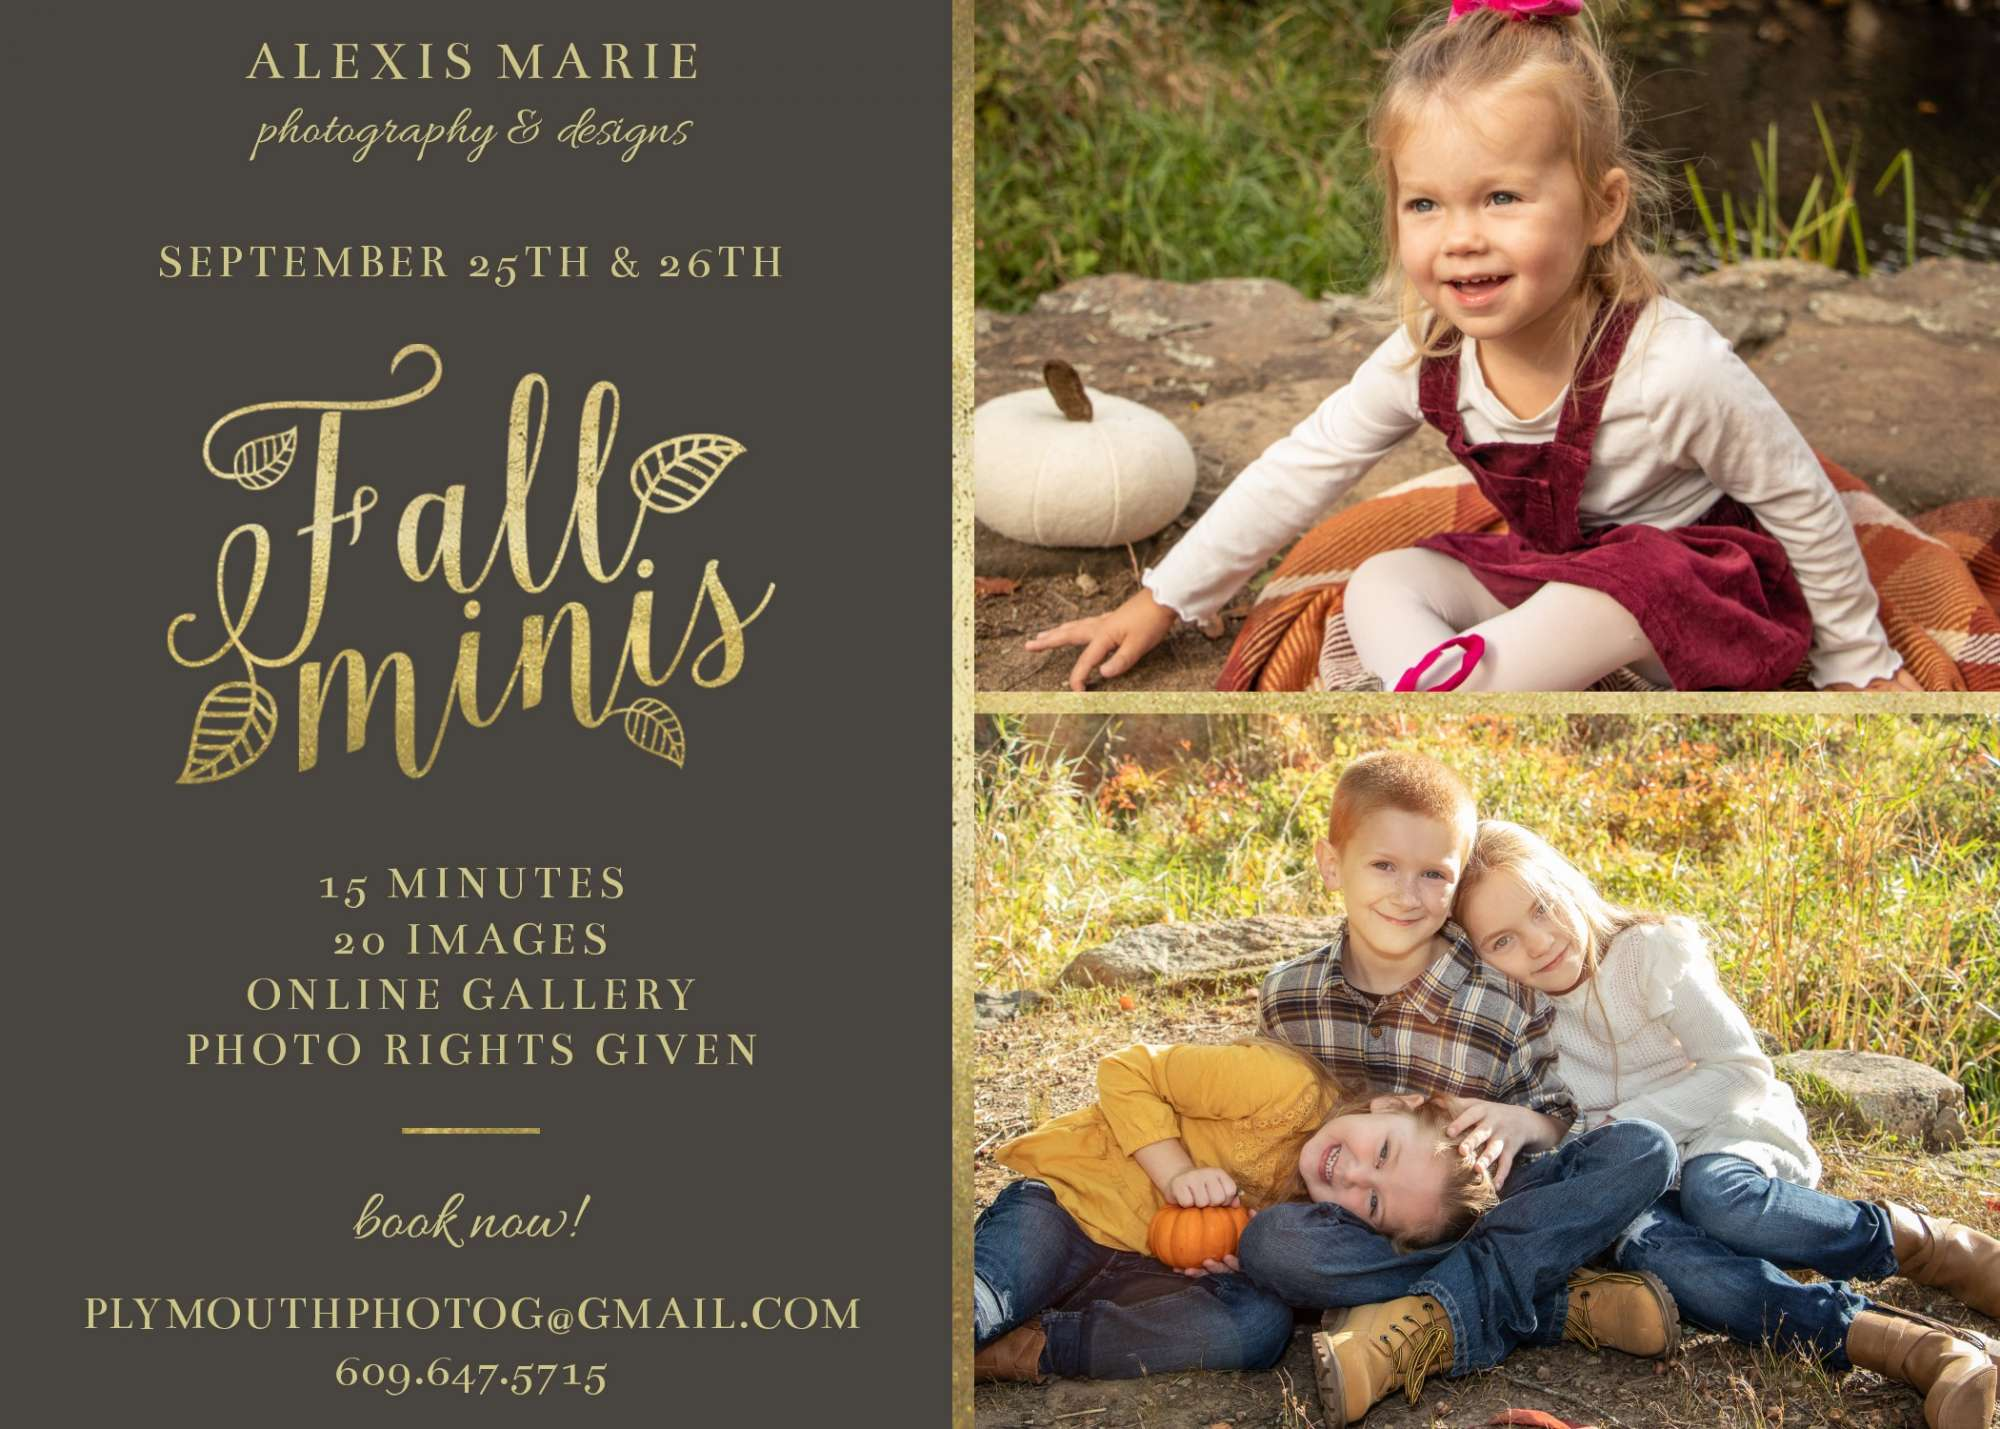 Alexis Marie Photography